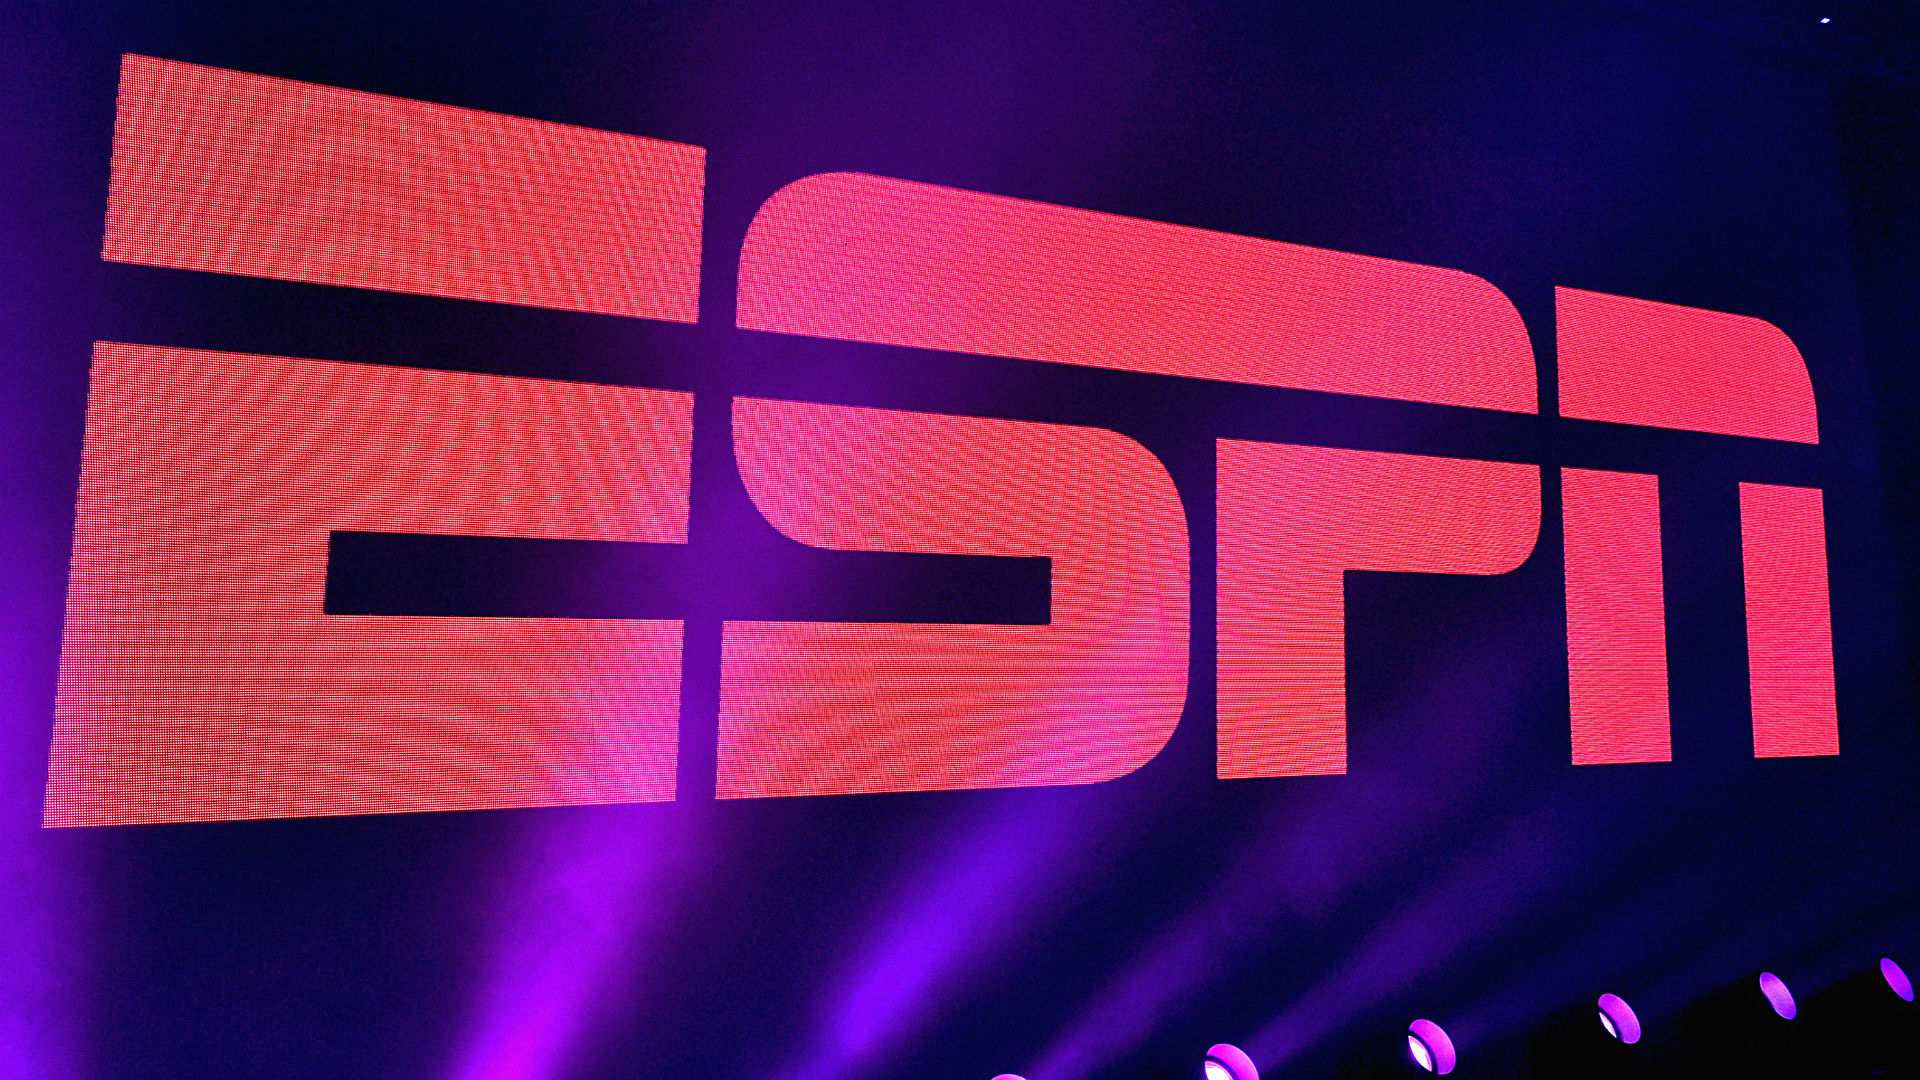 Espn Looks To Save Millions By Slowing Growth In Talent   Espn 1920x1080